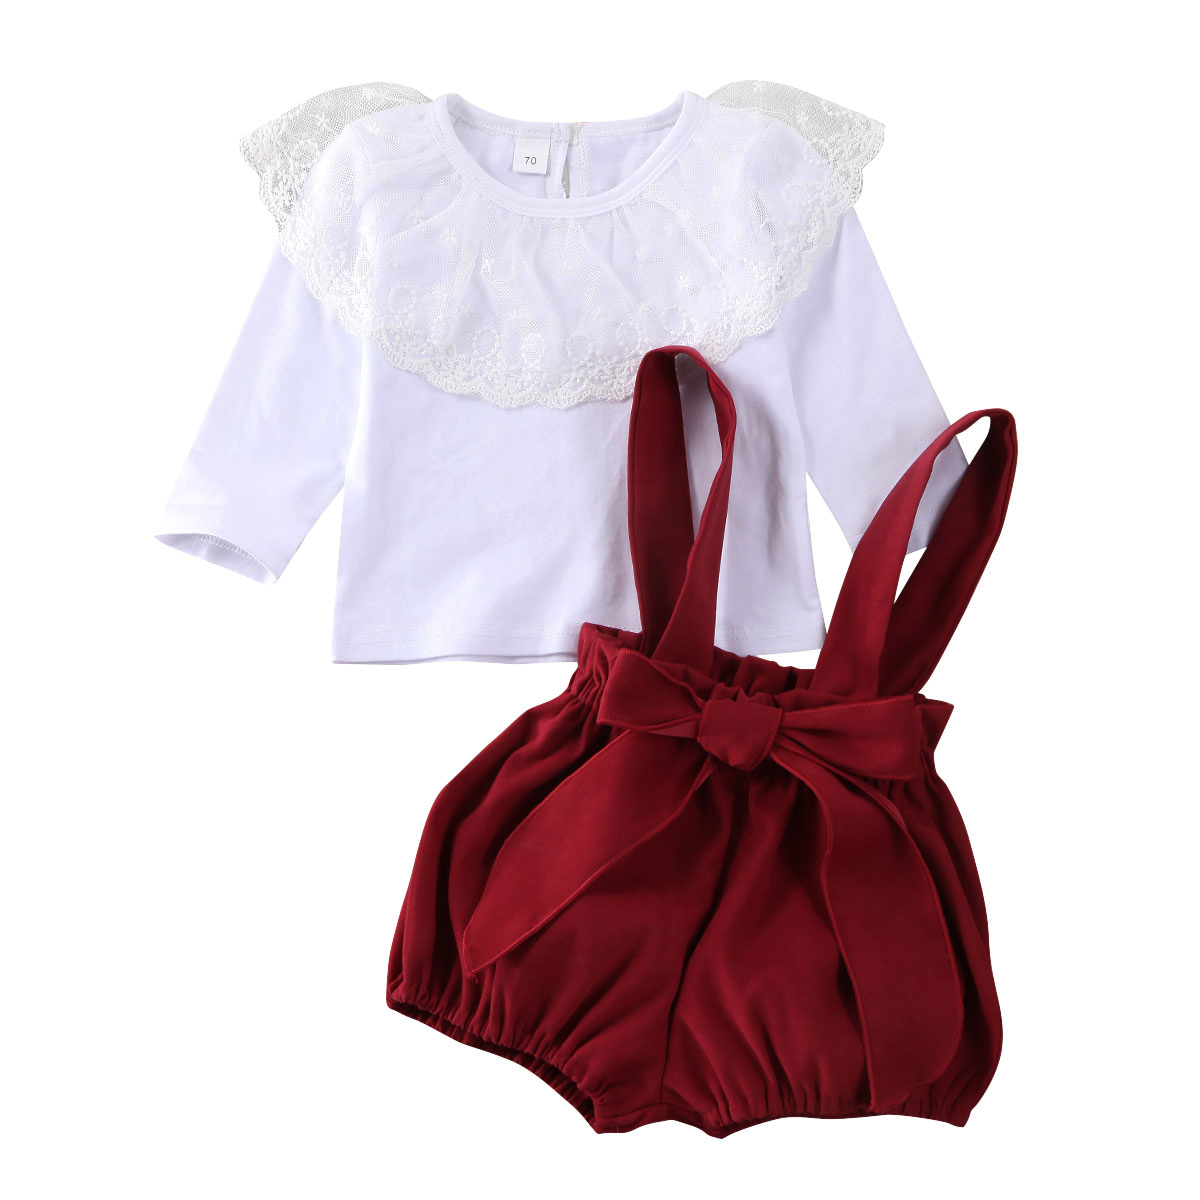 UK Toddler Baby Girls Kid Lace Lotus Leaf Tops Strap Shorts Overalls Clothes Set